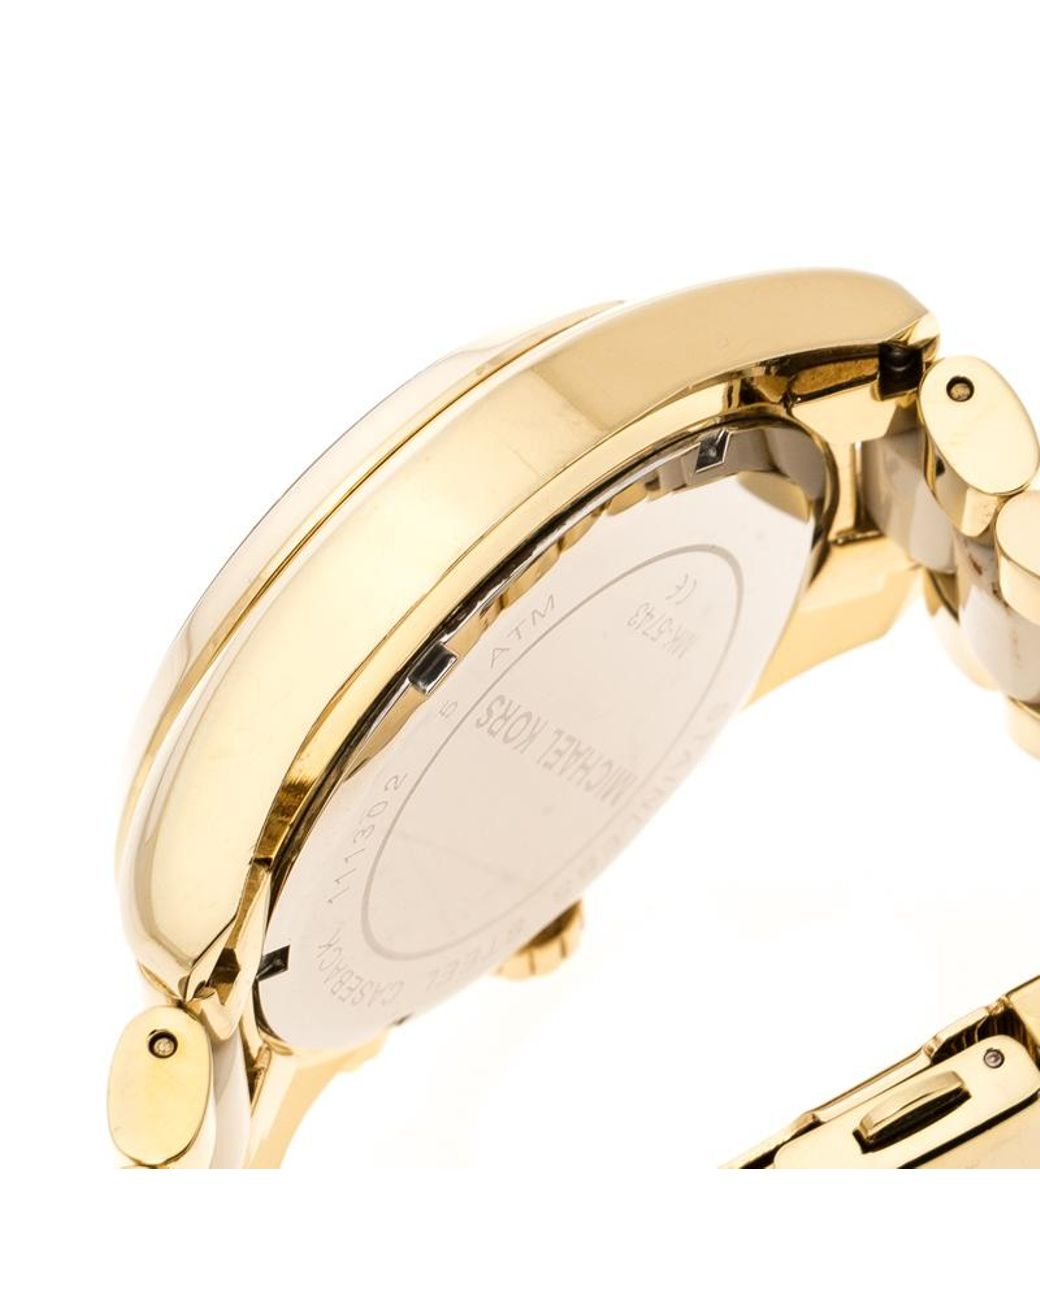 bac0ff72a Michael Kors Silver White Yellow Gold Plated Steel Ceramic Bradshaw Mk5743  Women's Wristwatch 43 Mm in Metallic - Lyst